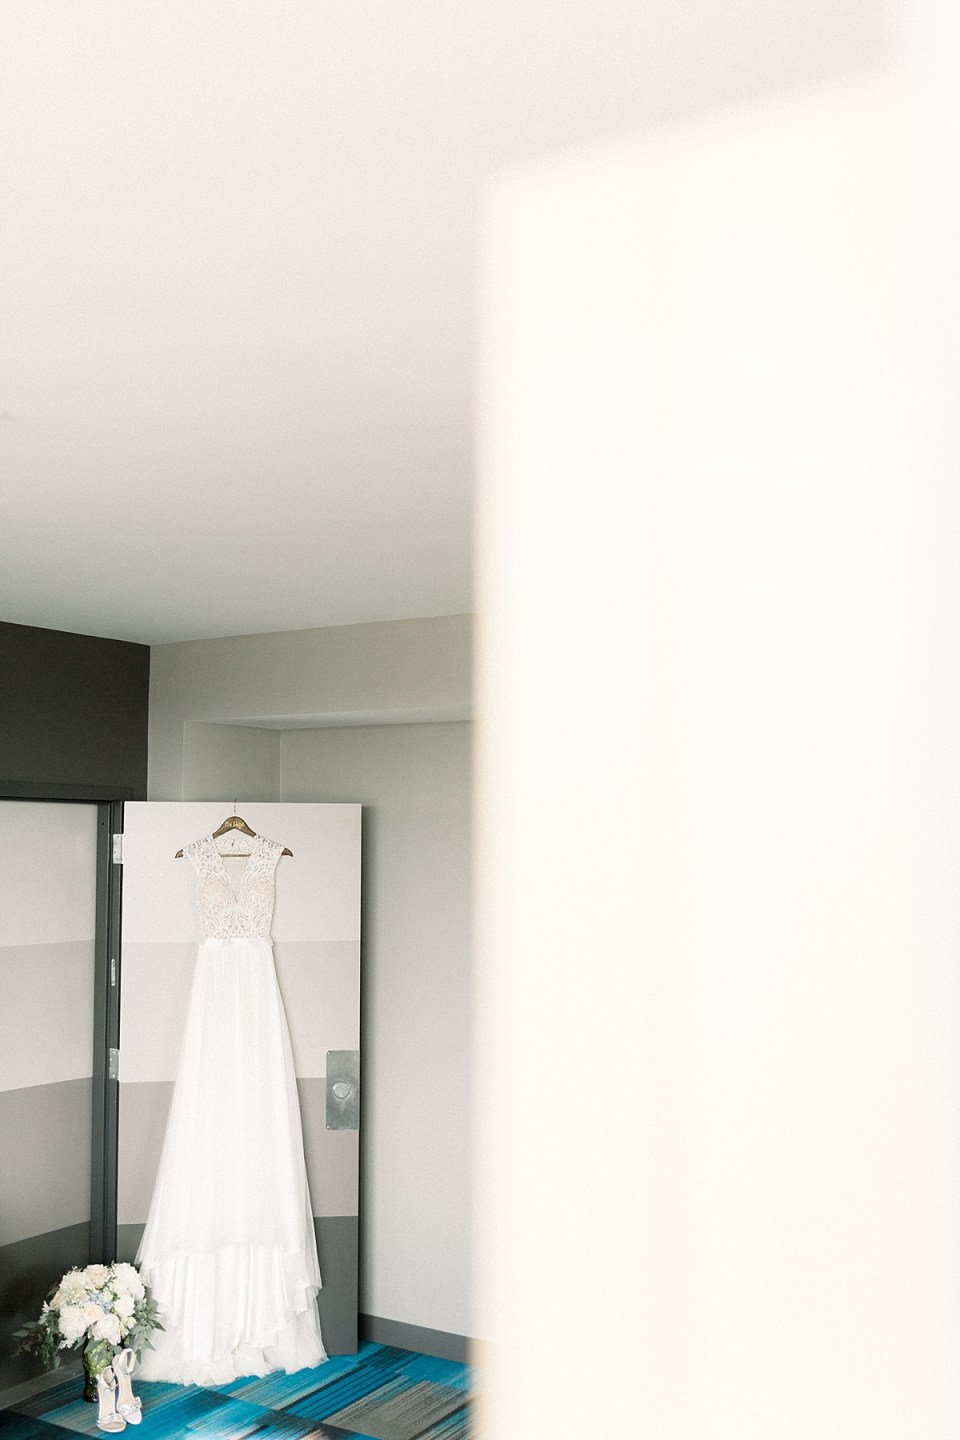 Arielle Peters Photography | Wedding gown hanging at The Blue Heron at Blackthorn in South Bend, Indiana on wedding day.